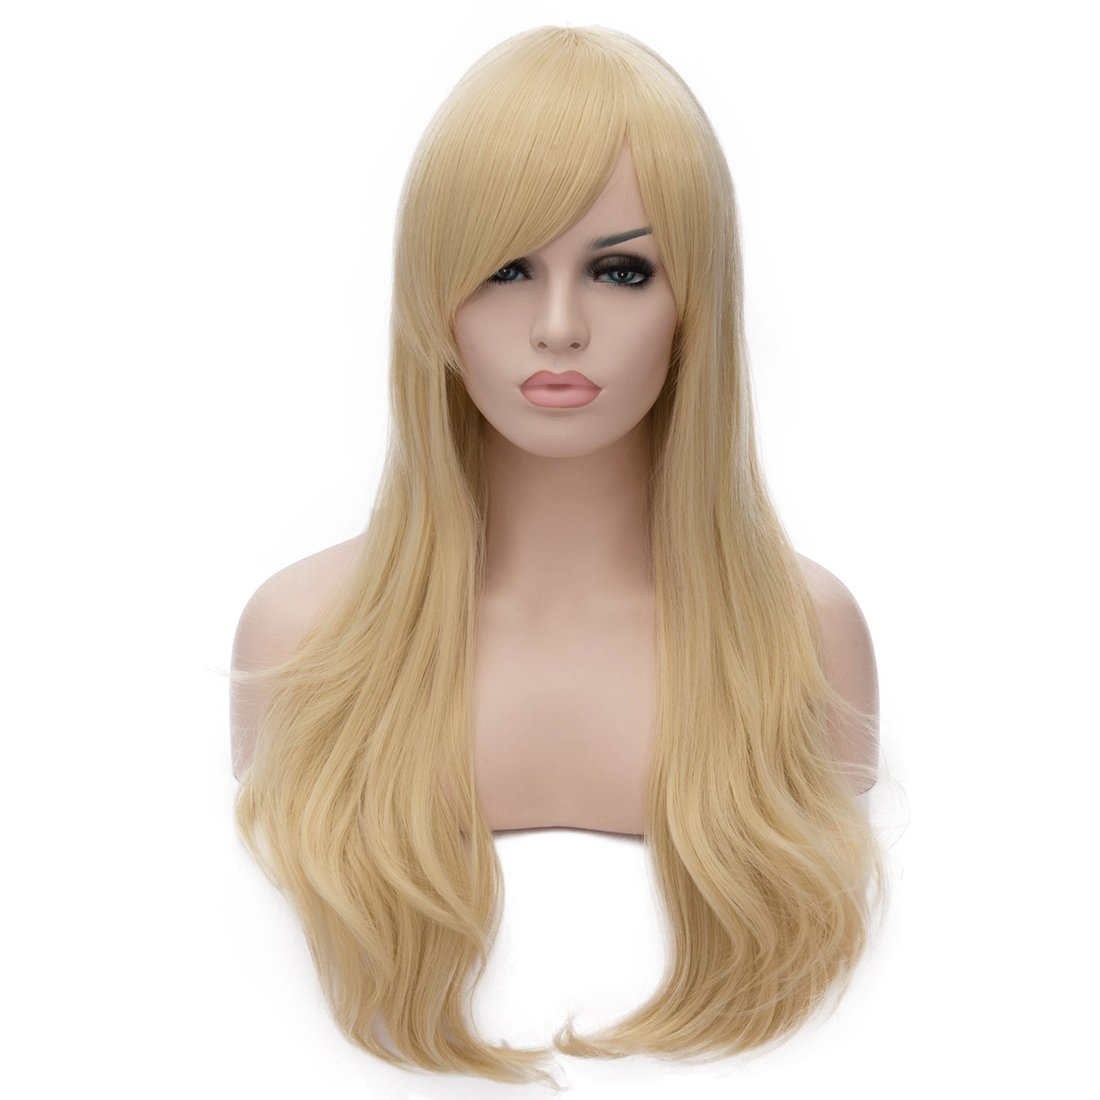 YOPO 28 Wig Long Big Wavy Hair Women Cosplay Party Costume Wig(Light Blonde) Blonde Curly Wig